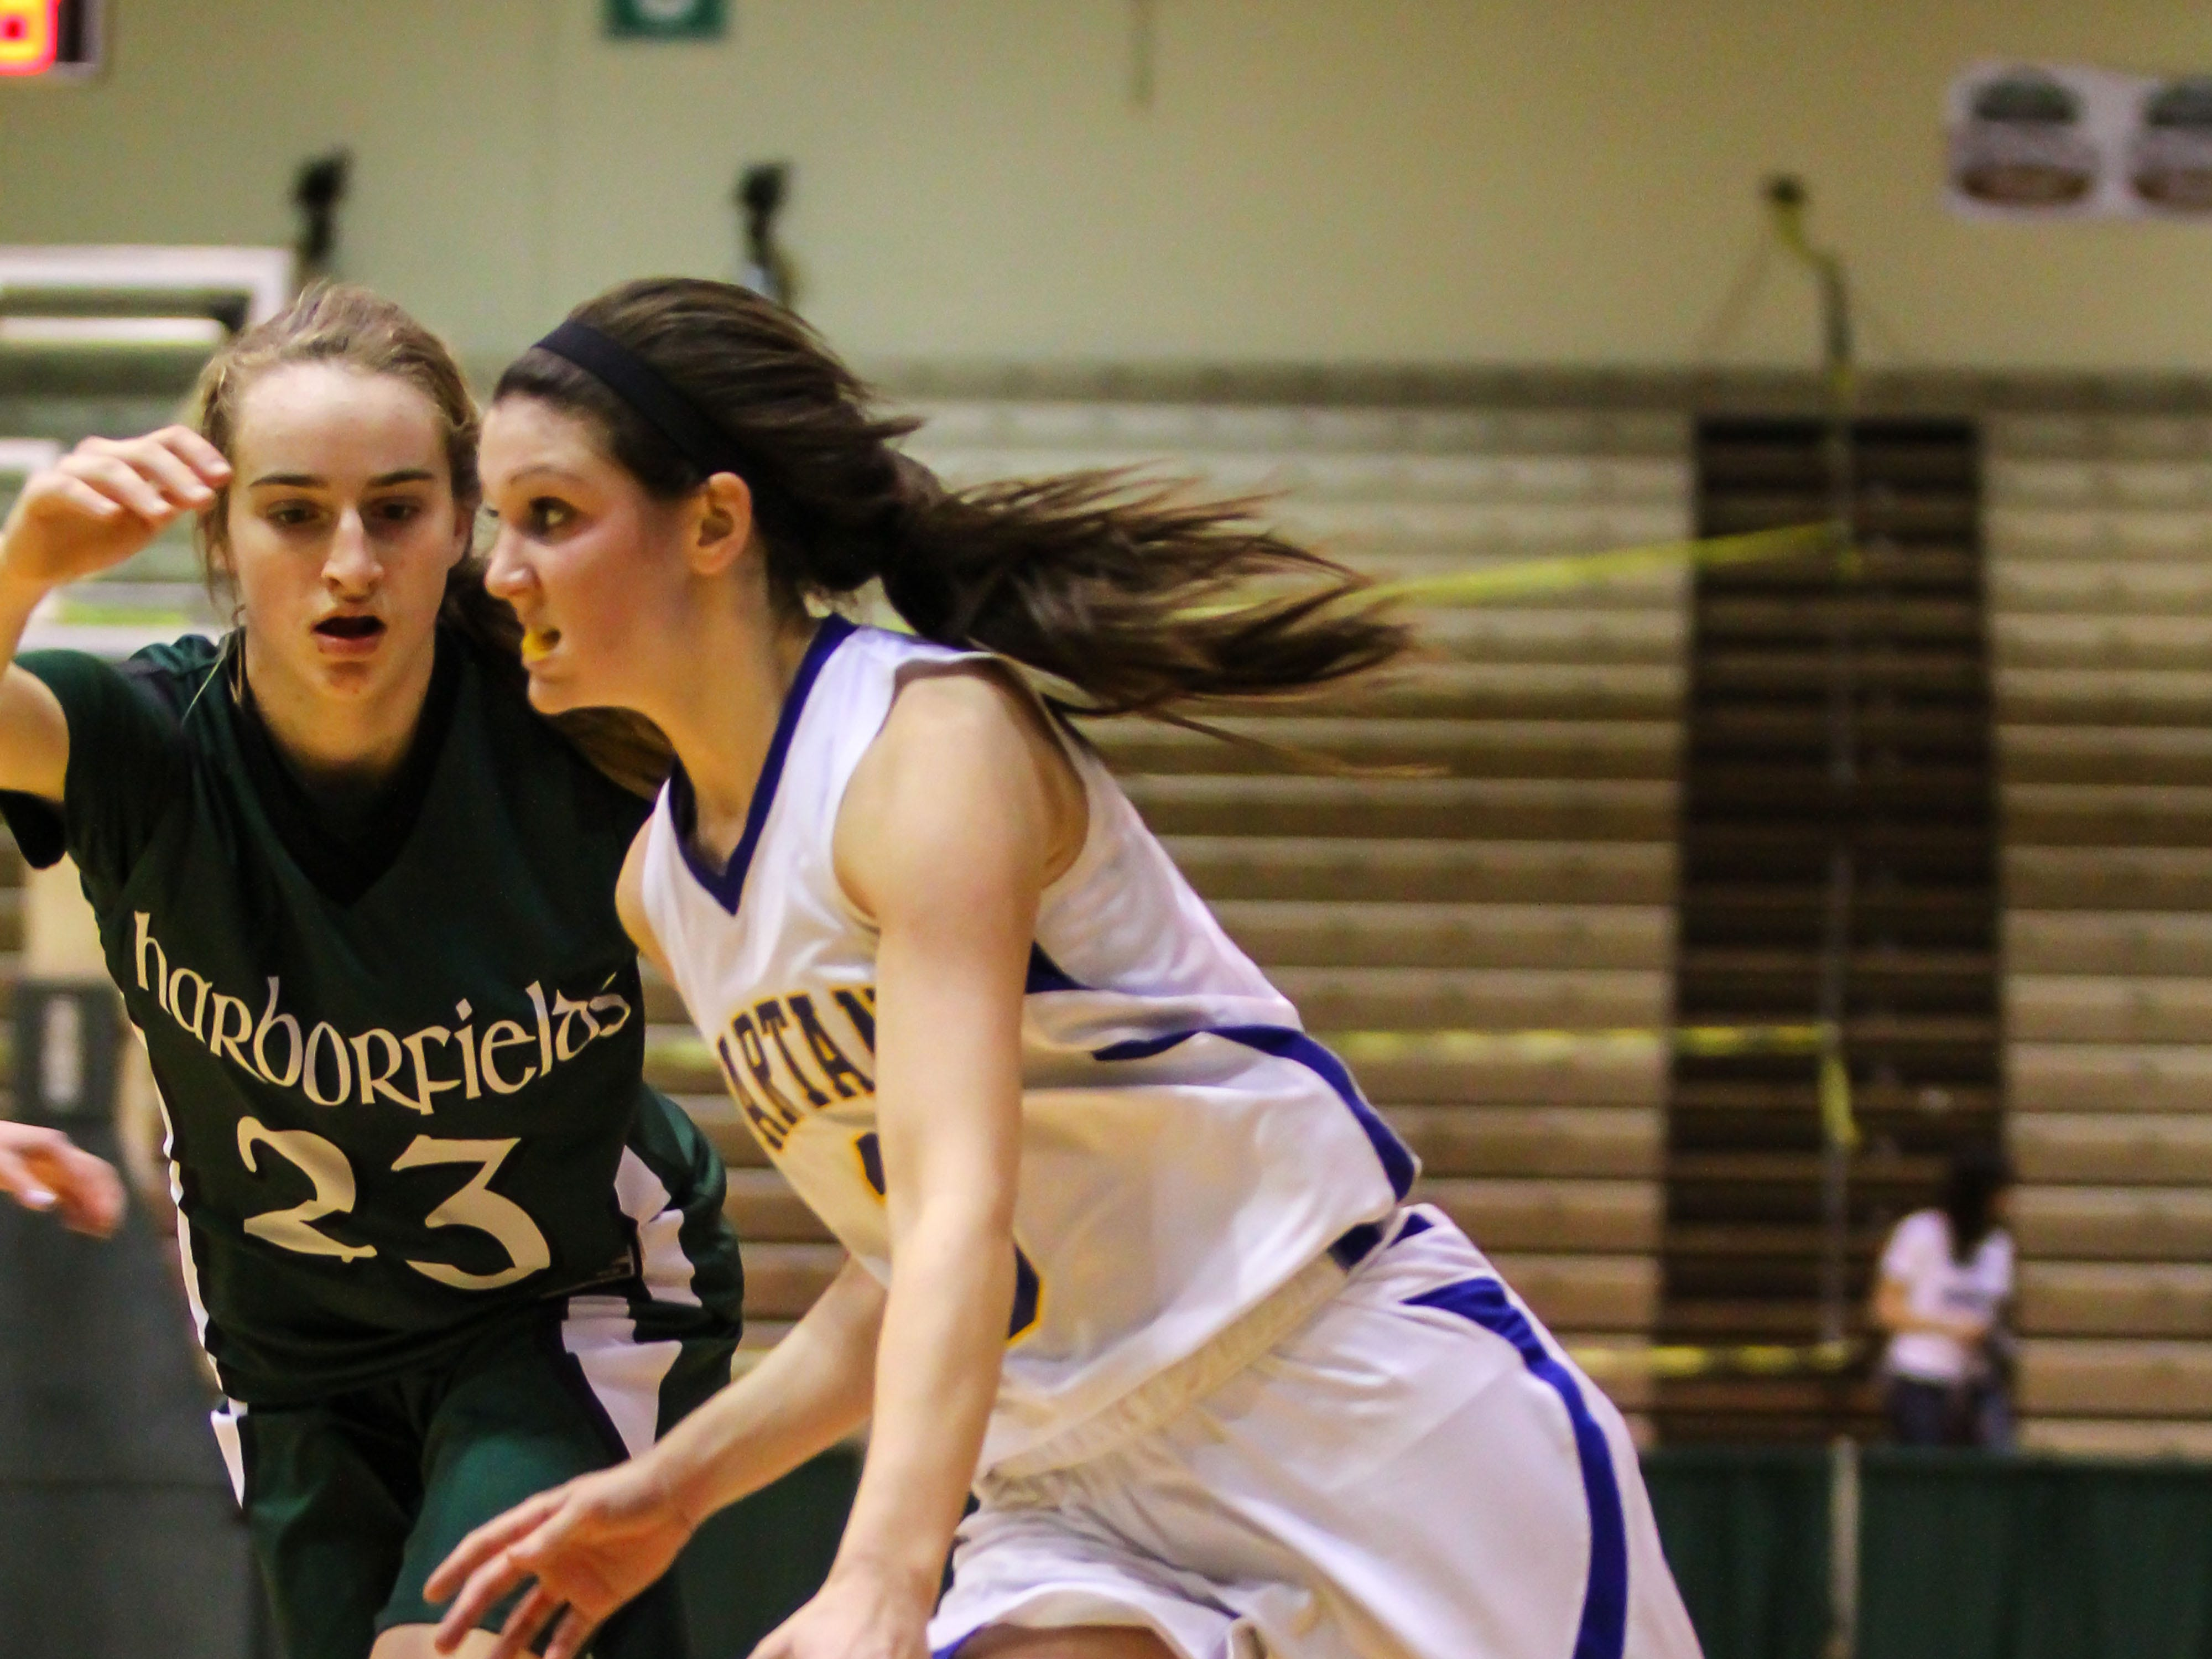 2013: Victoria Dean drives to the basket during Maine-Endwell's 53-46 victory. Dean finished with 10 points.